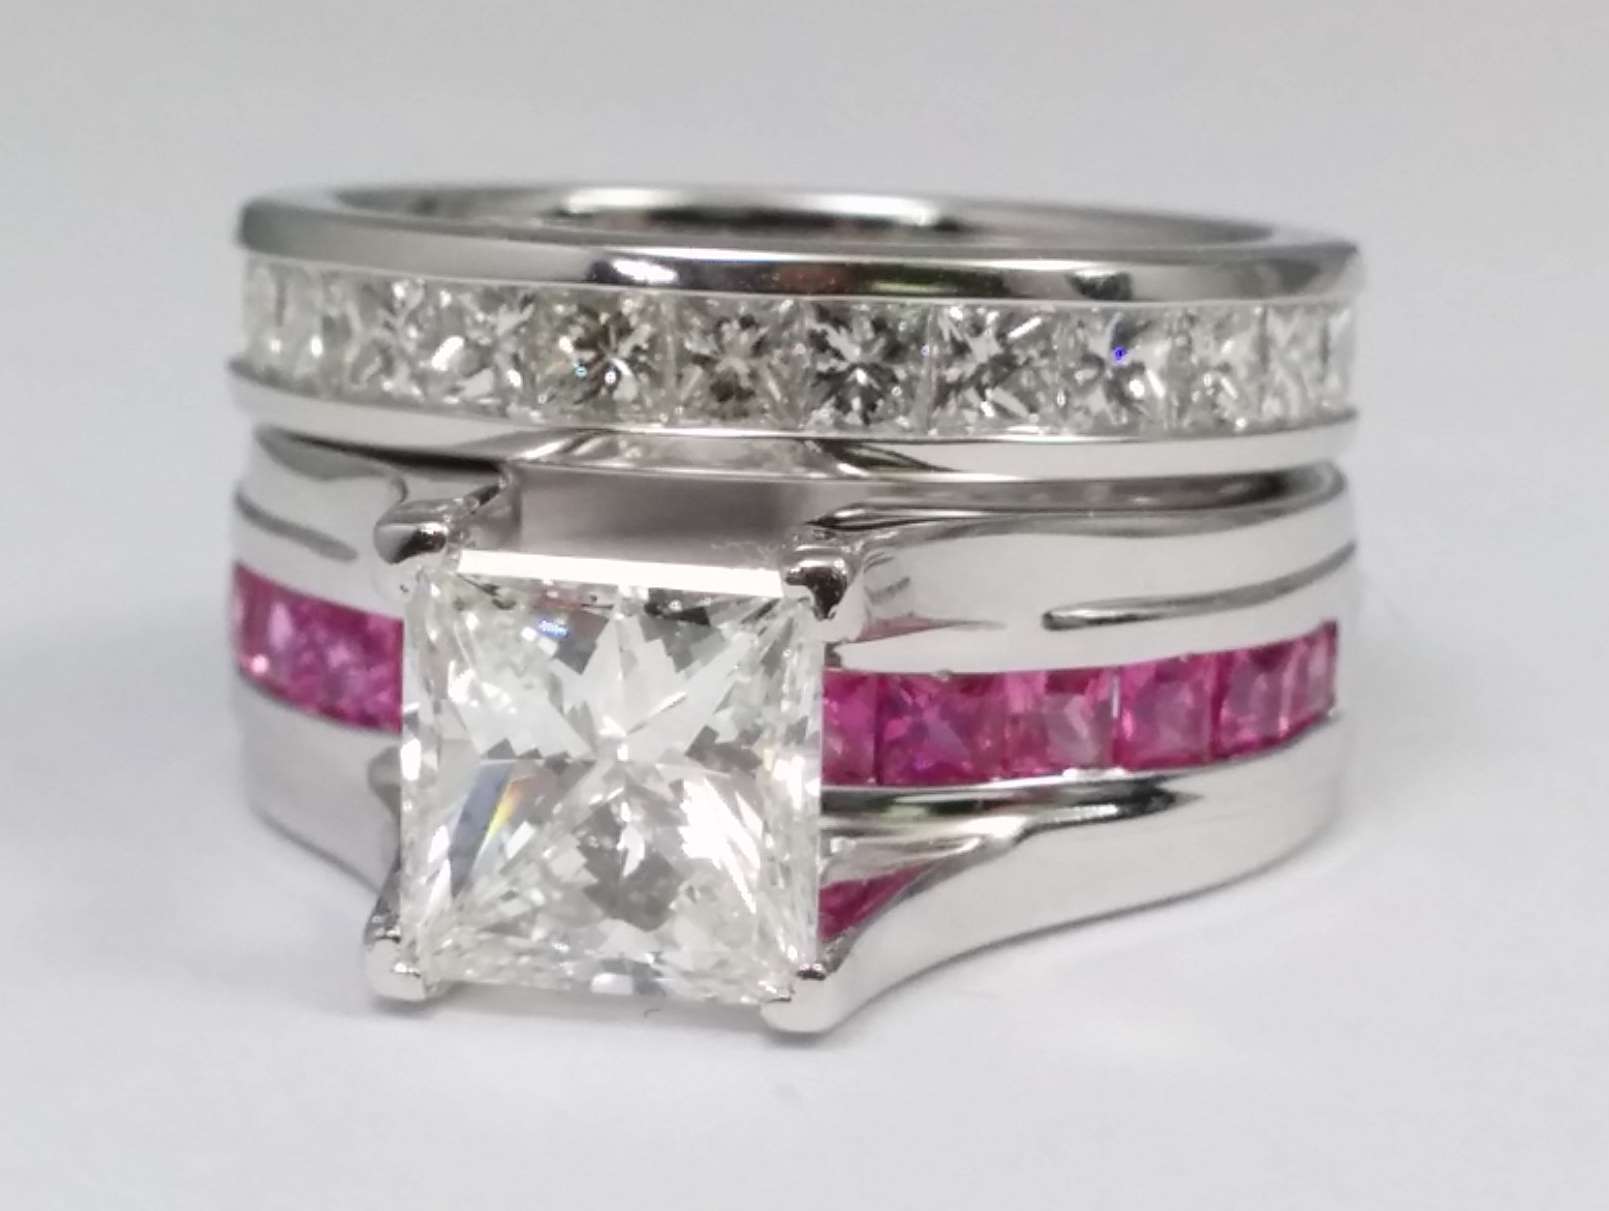 sapphire anniversary band pink in and ring bridge white engagementdetails cut princess eternity diamond cfm with engagement gold setting bands